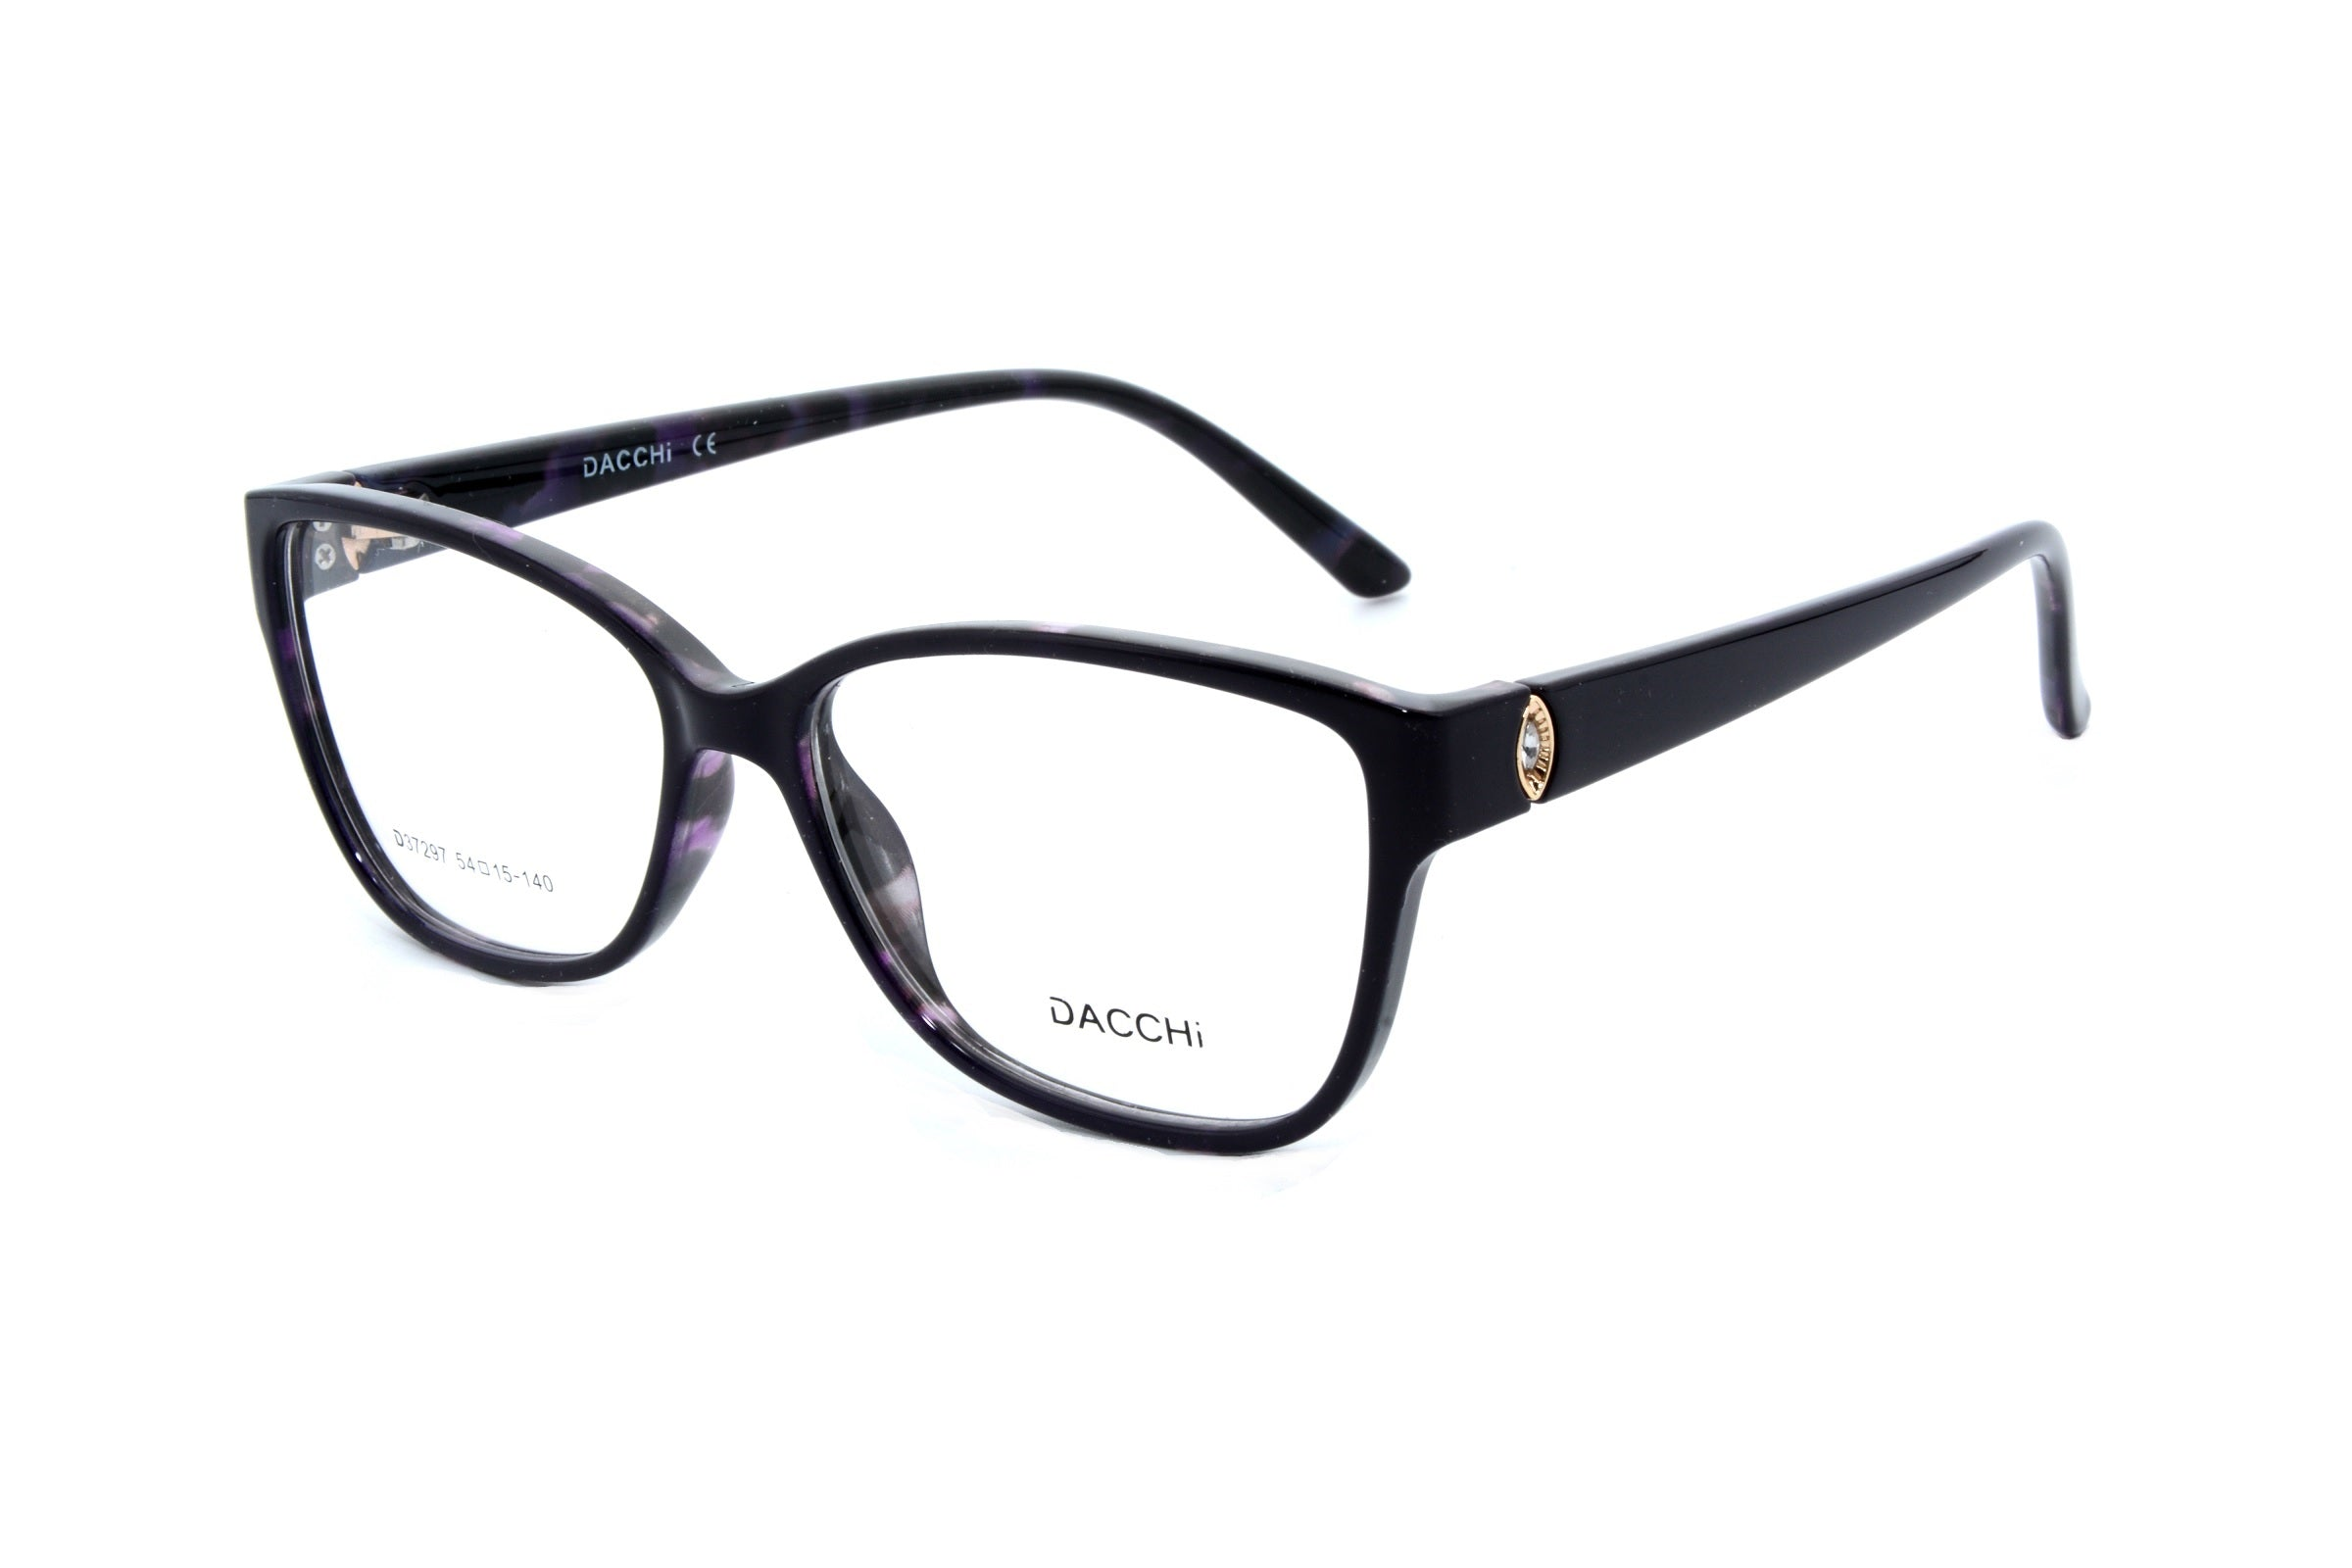 Dacchi eyewear 37297, C4 - Optics Trading